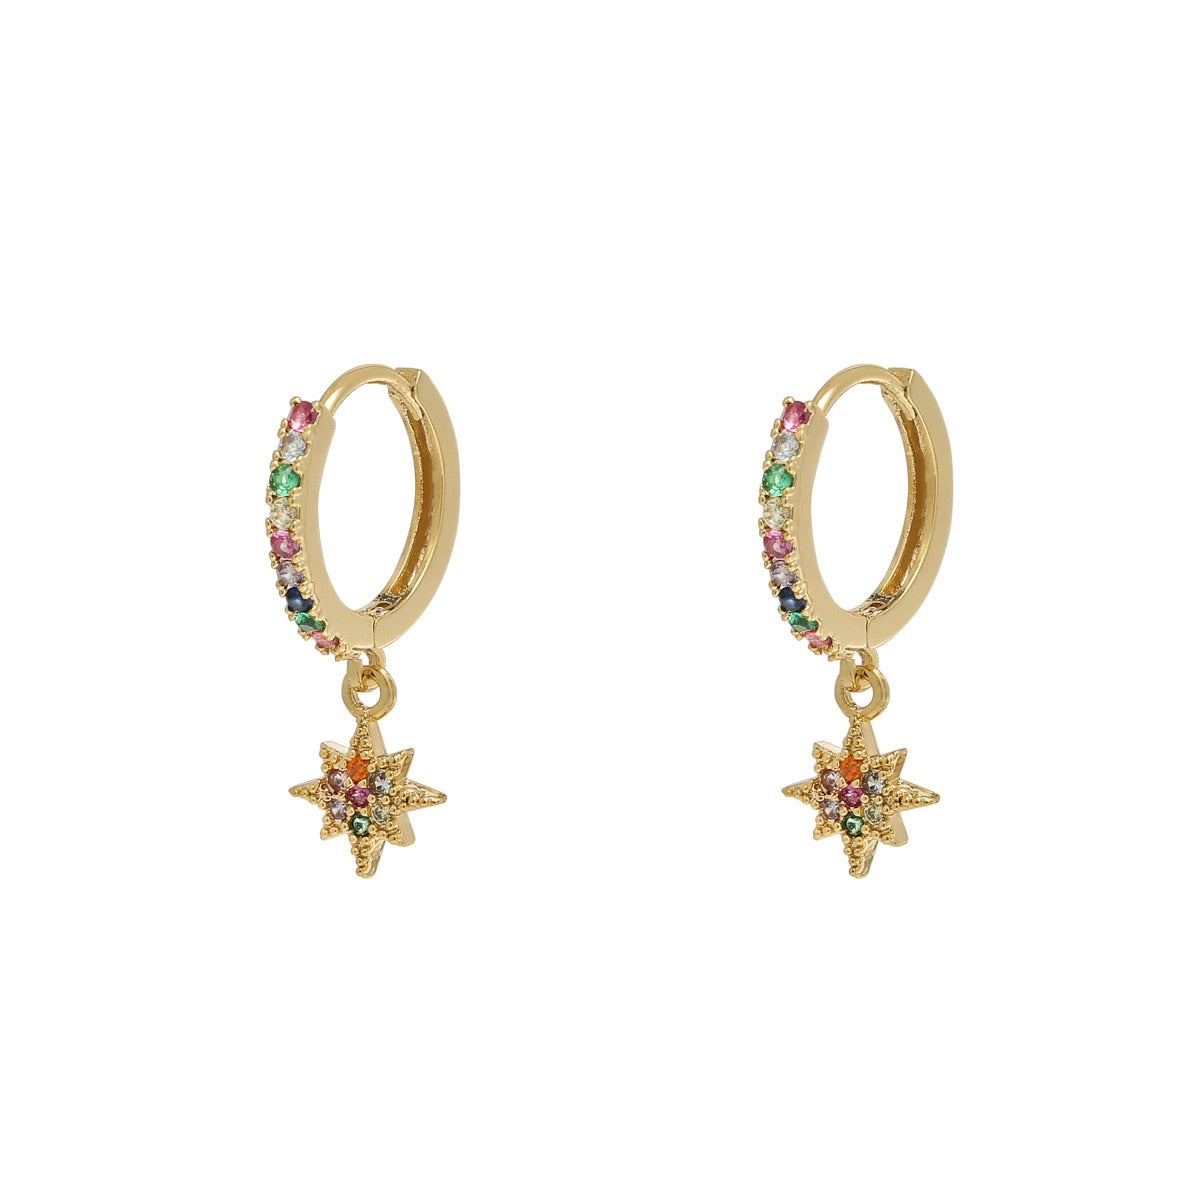 Mini Hoops Earrings - Zirconia Star | Gift Pop Boutique